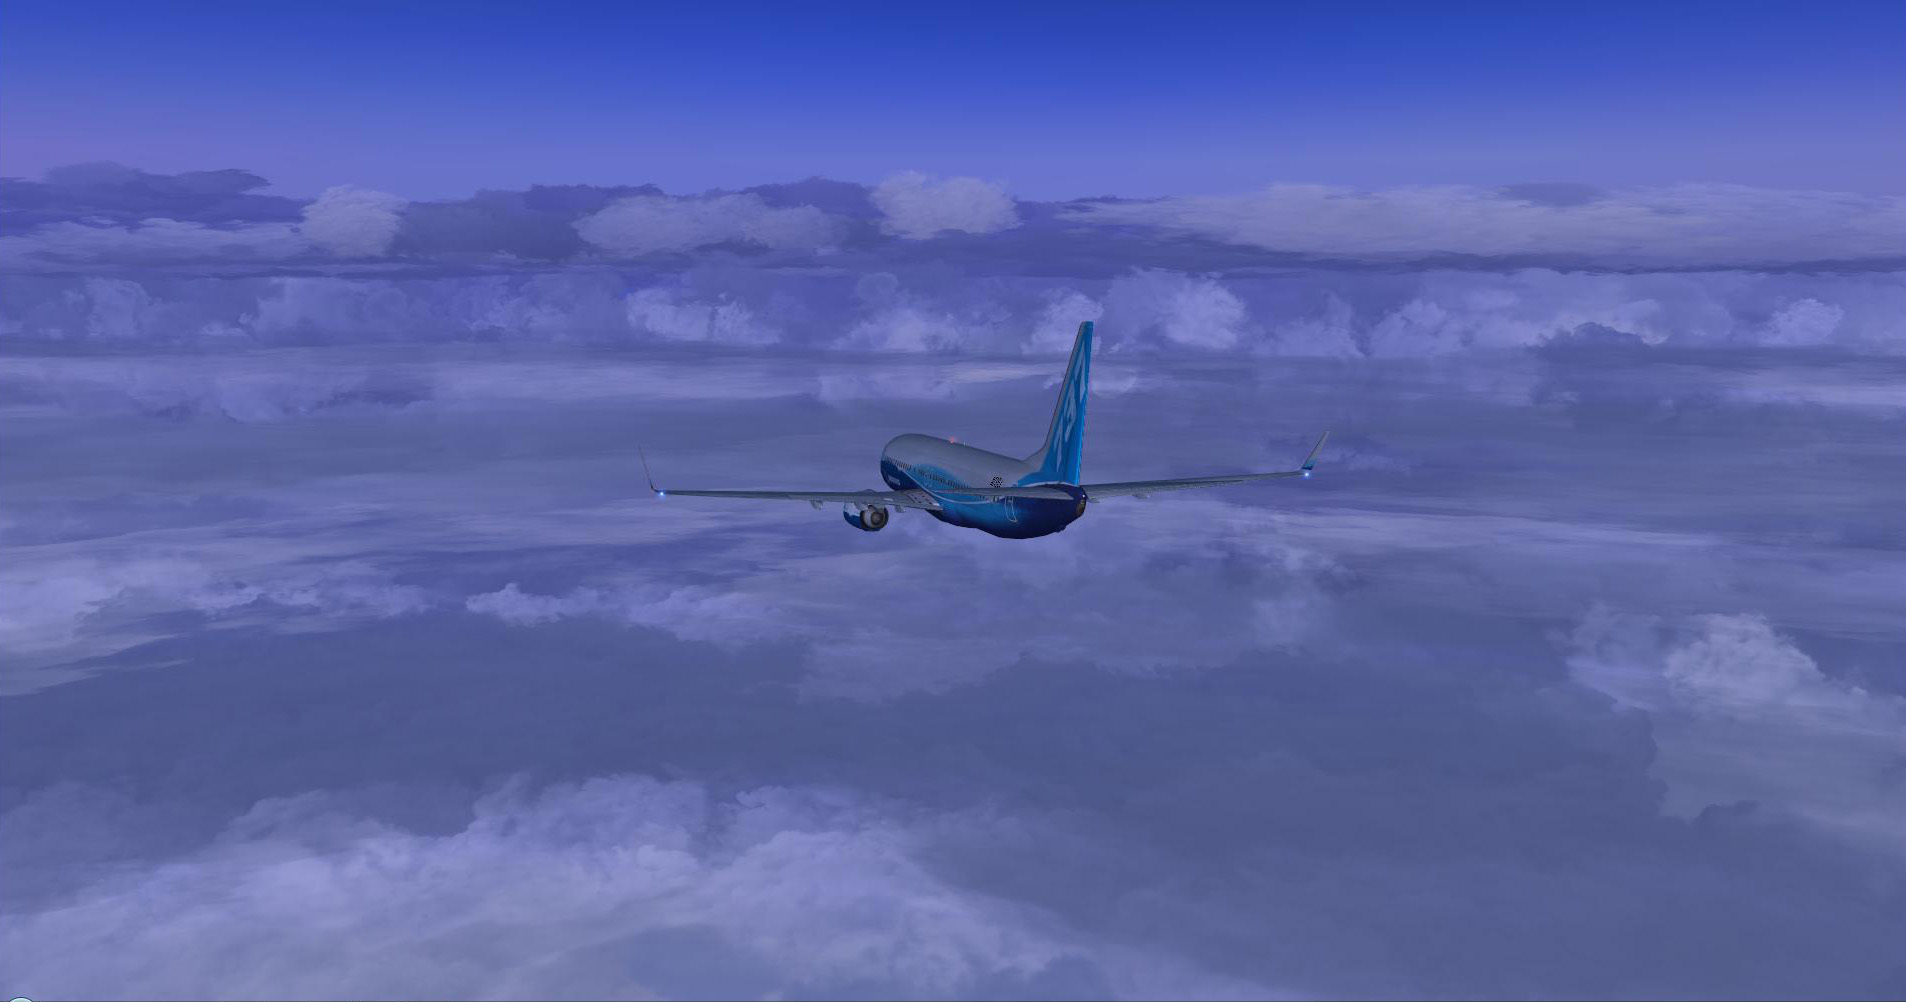 Enroute PHX-LAX. Nice looking clouds. Default FSX B738.